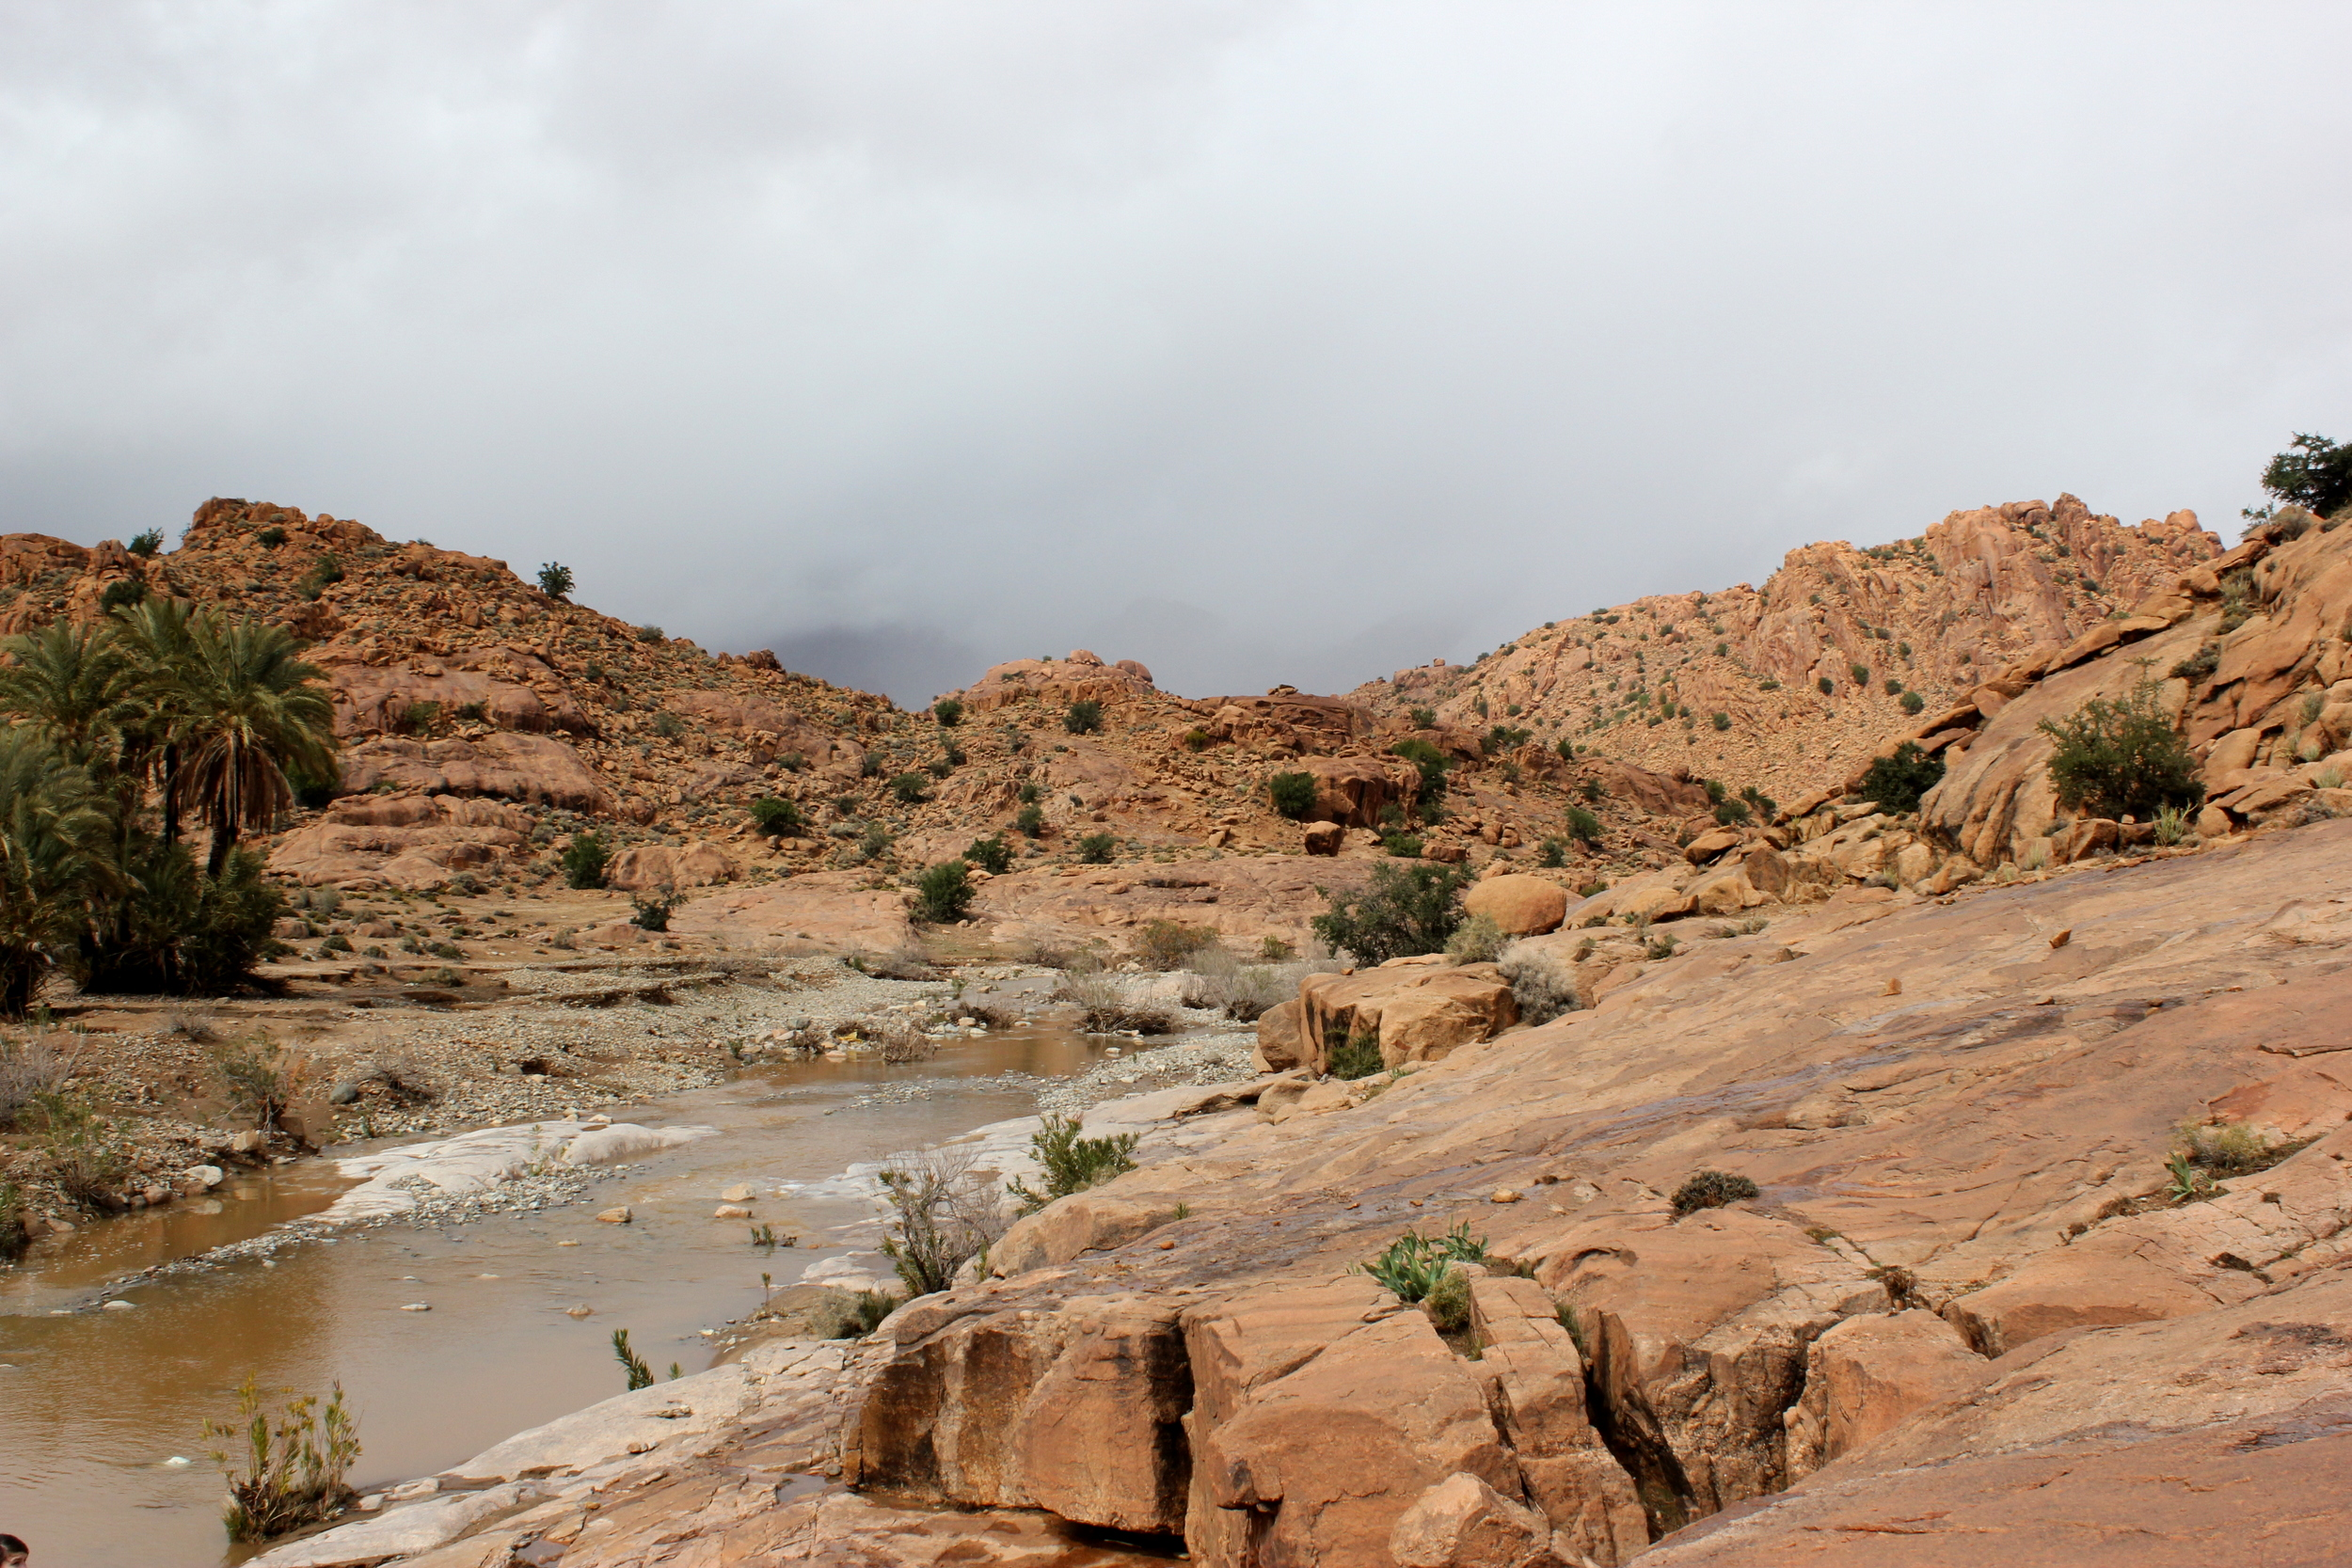 Oued Massa Nature Reserve